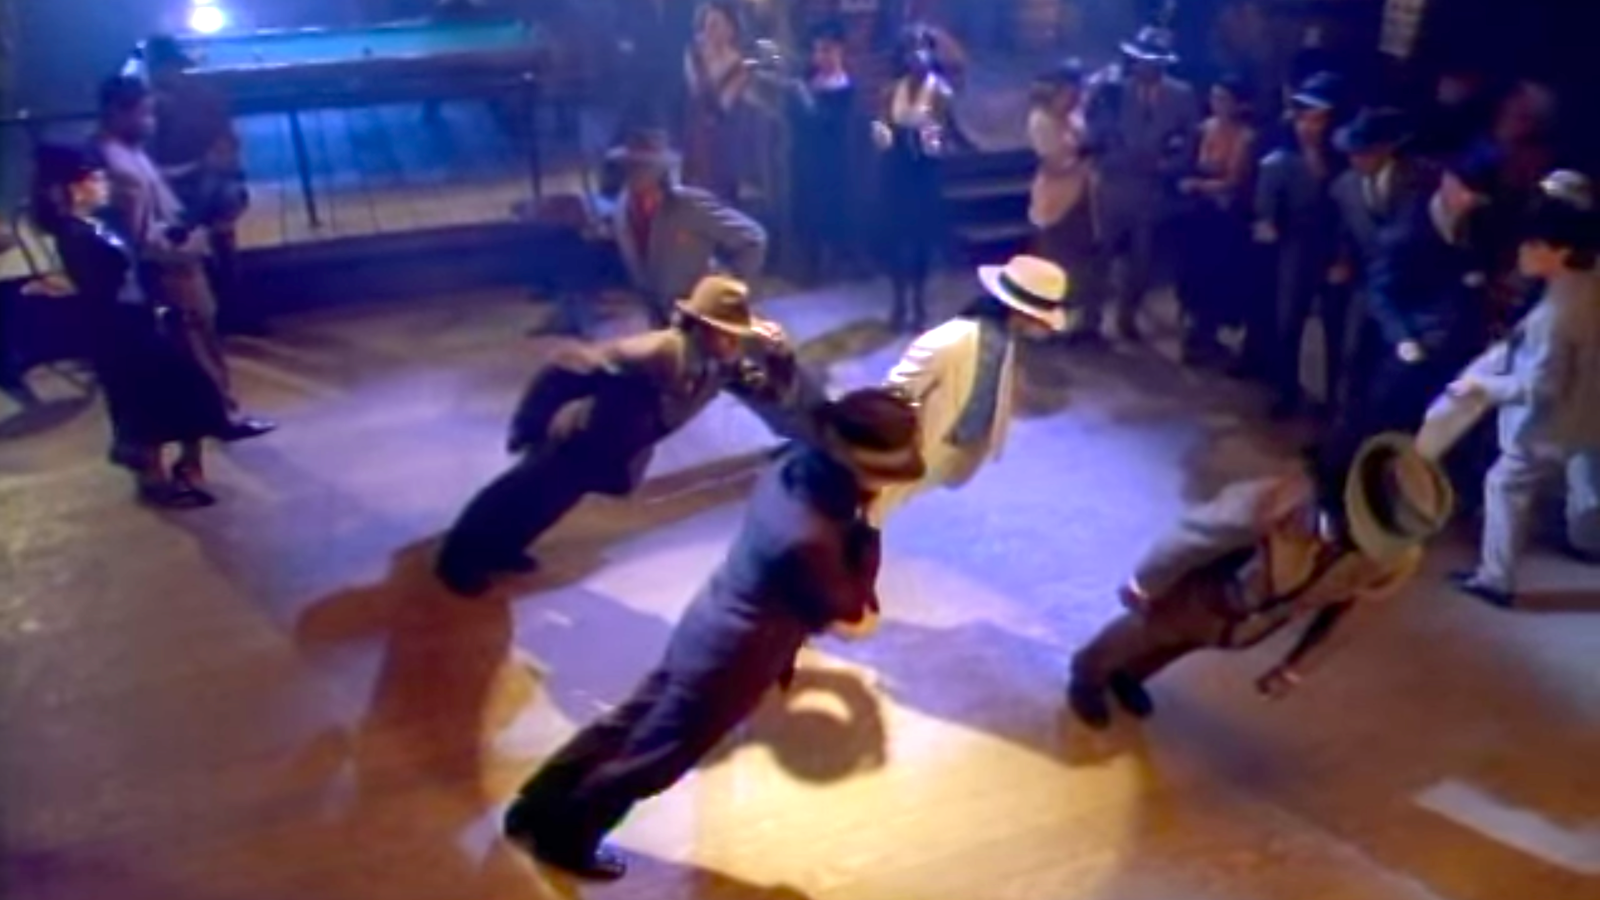 How To Dance Like Michael Jackson Nail Your Shoes The Floor Street Performance Wiring Harness